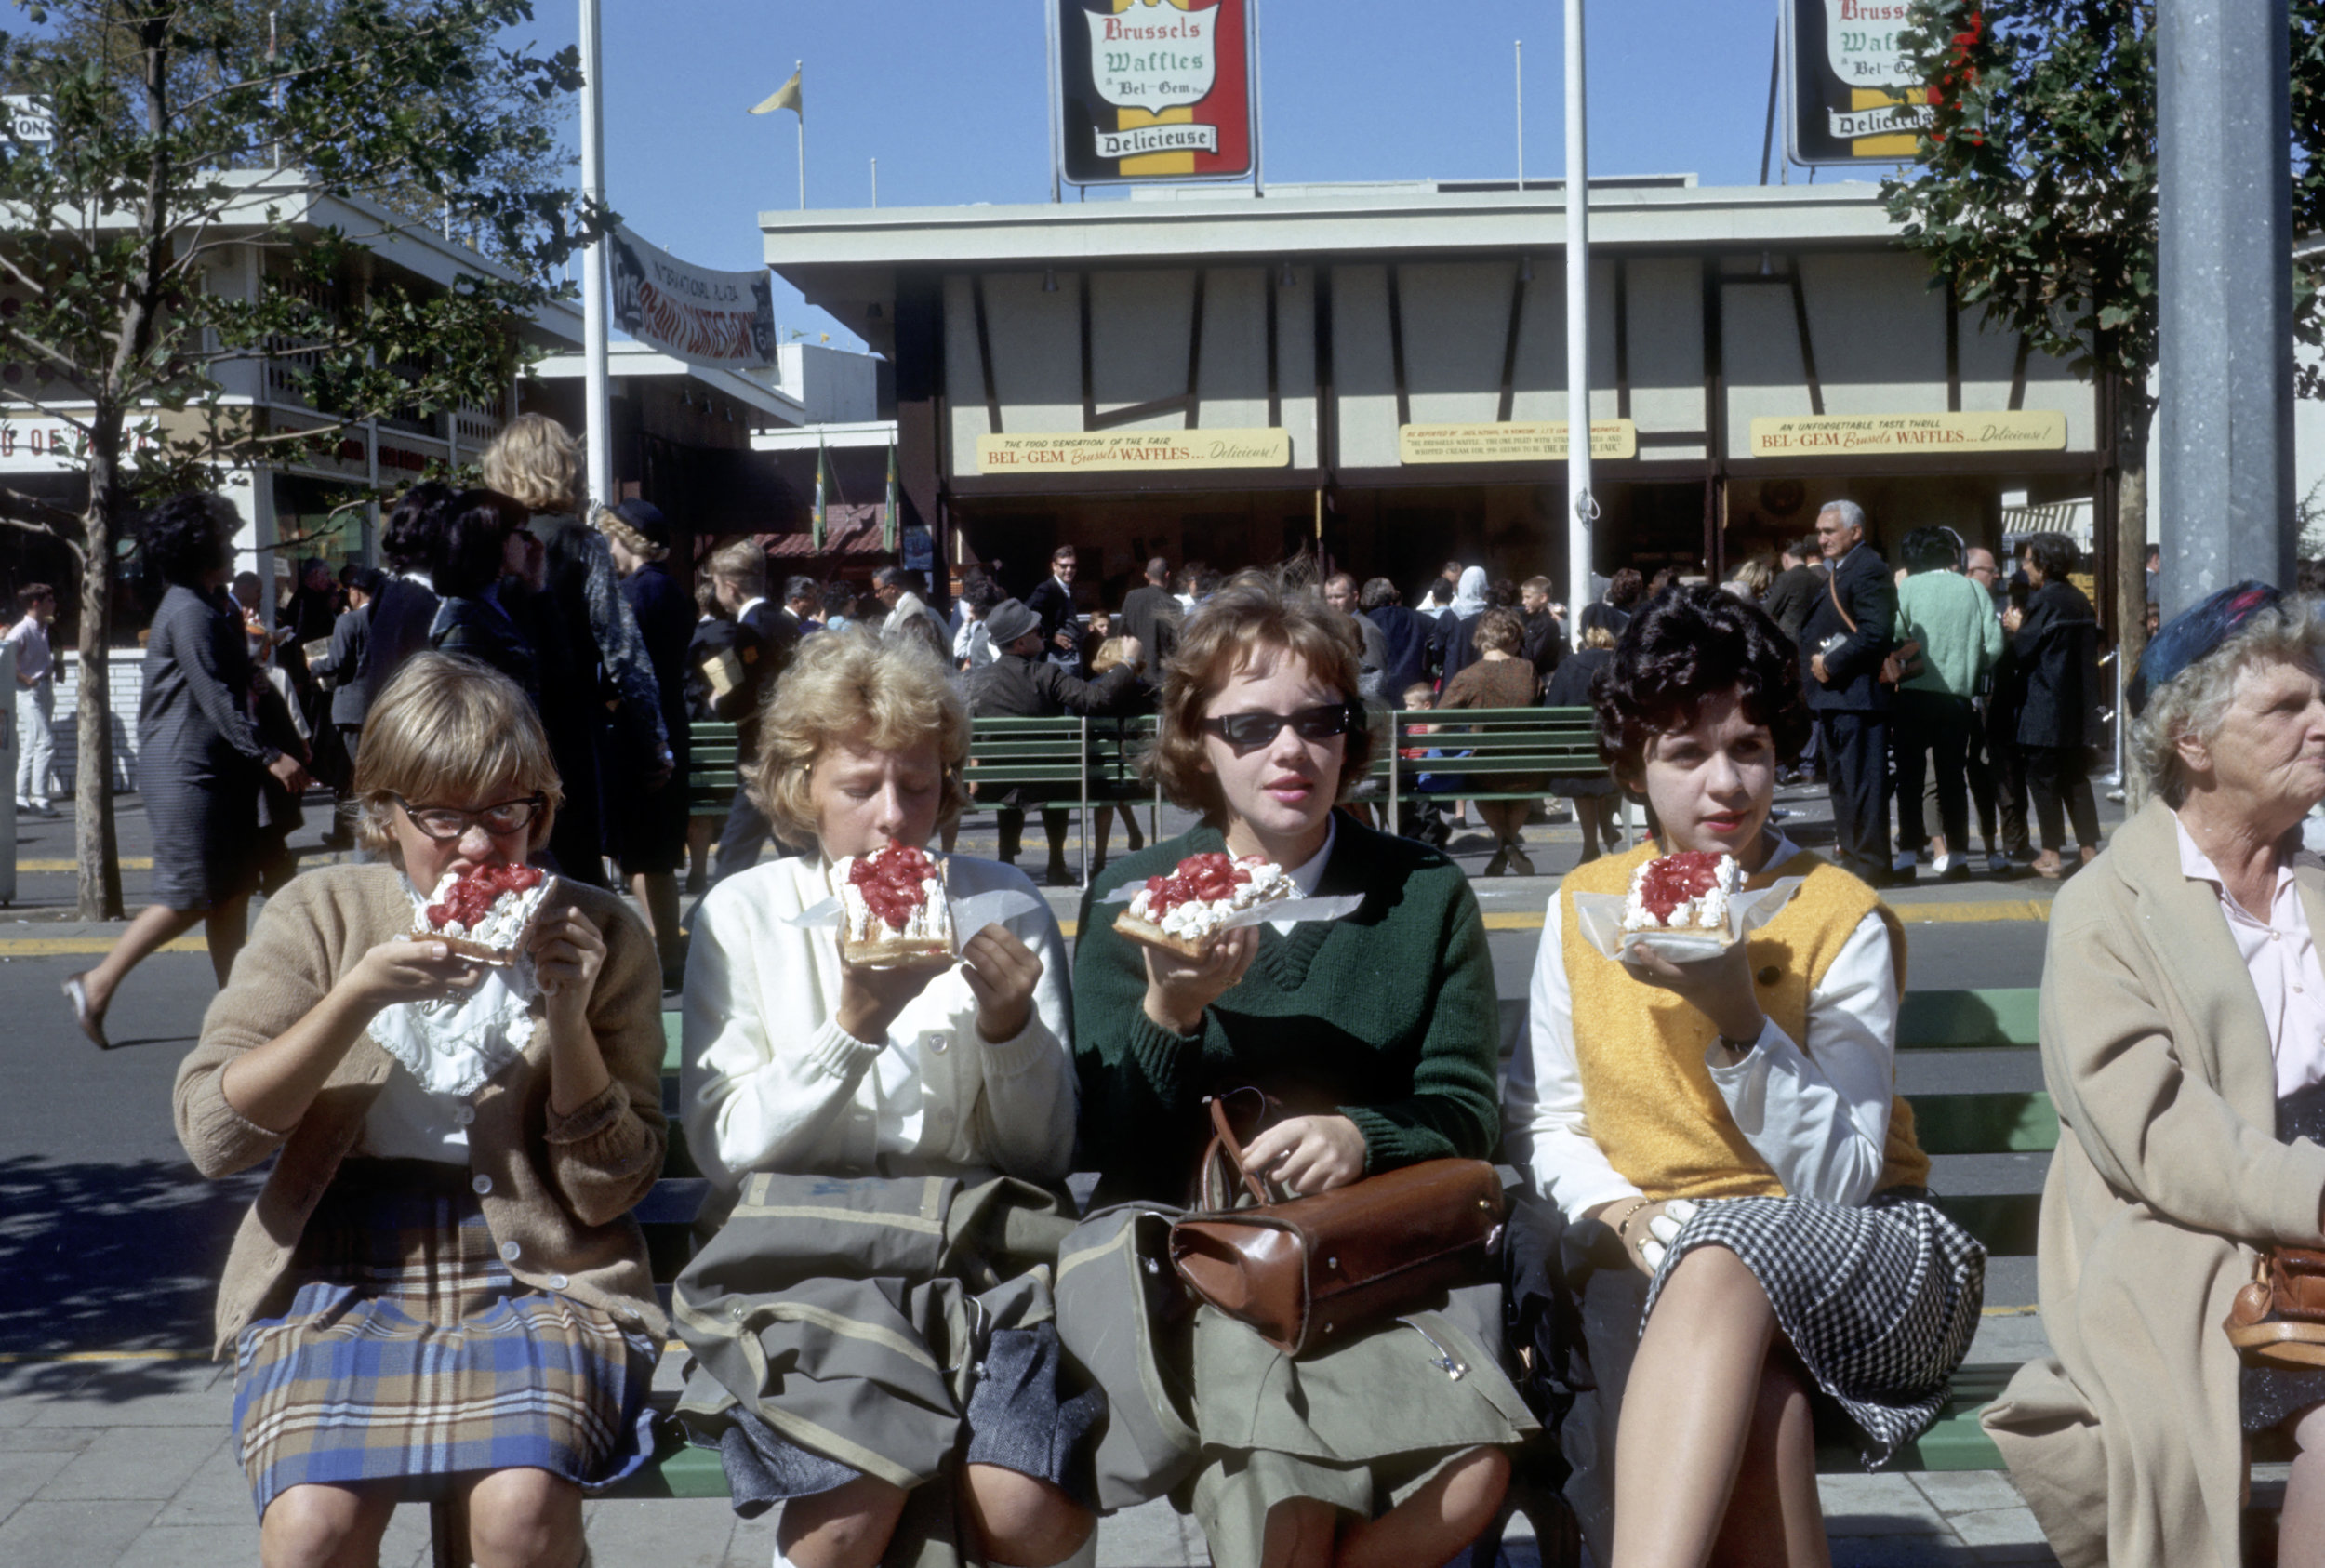 Four young women eat Belgian waffles near the State Pavilion at the 1964 World's Fair. // Photo courtesy of QEDC